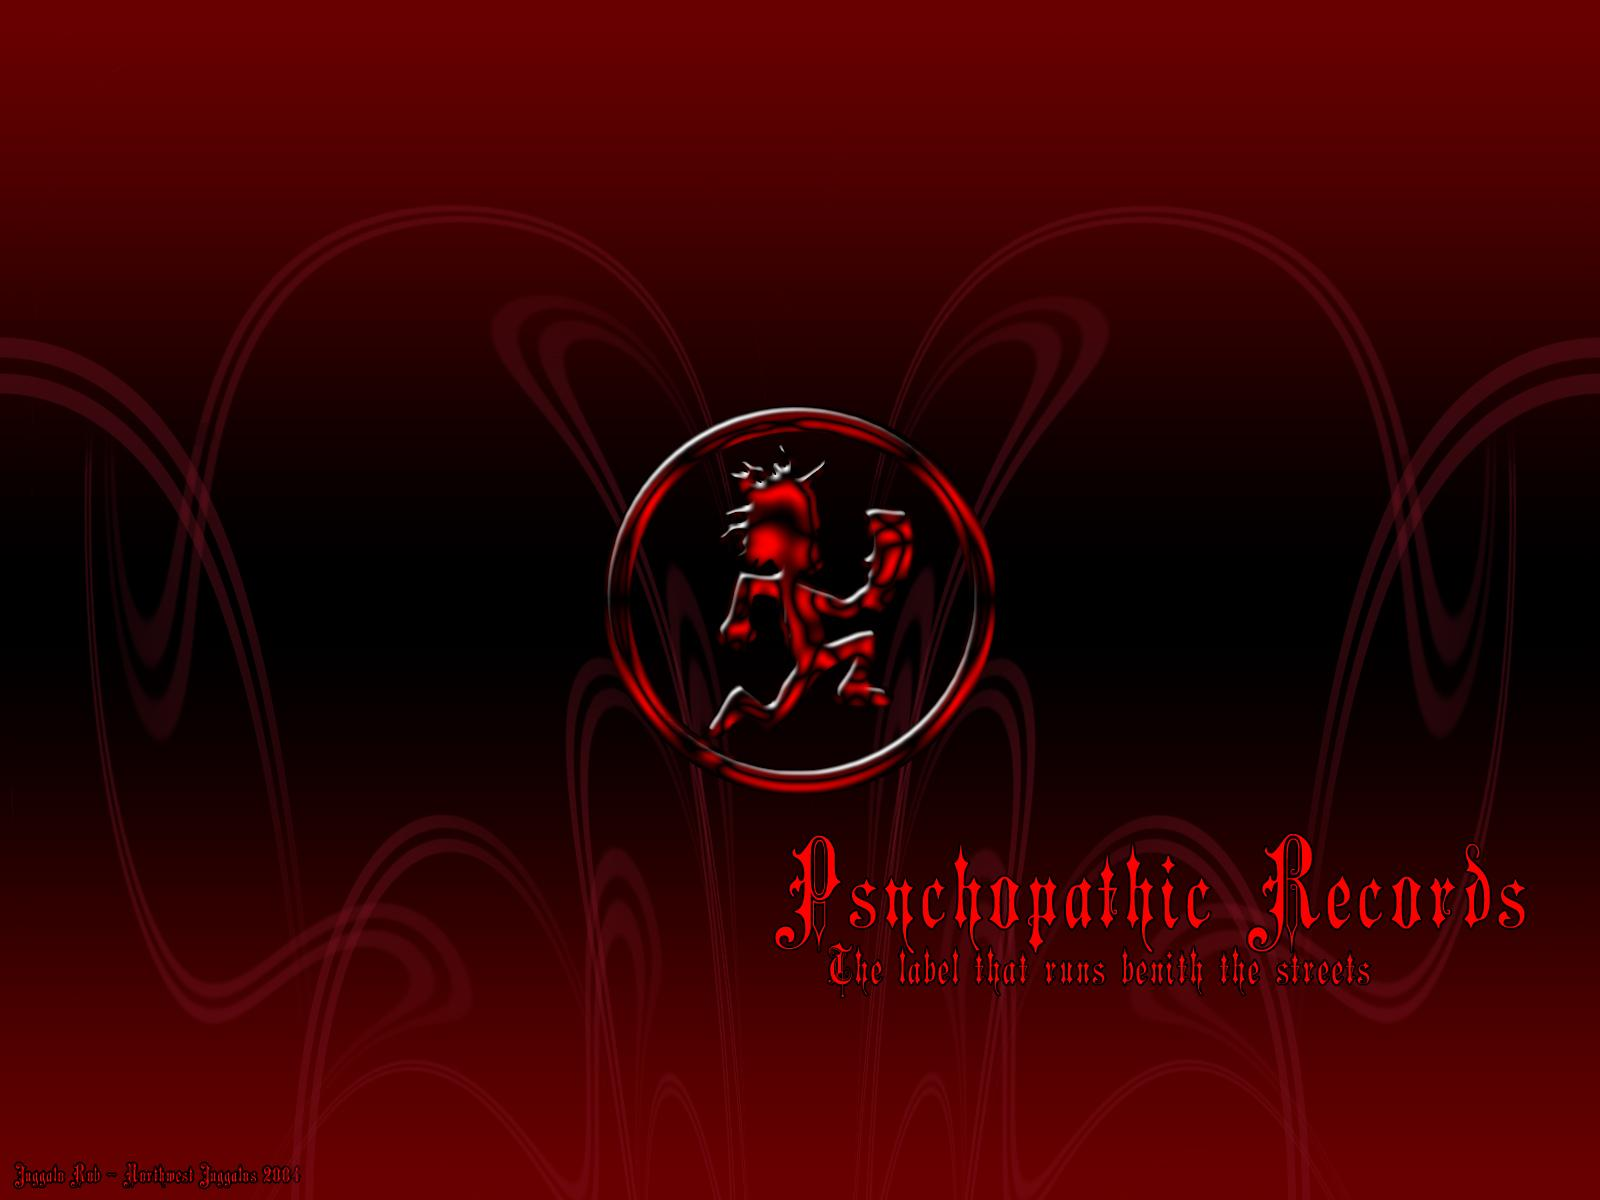 Psychopathic Records Wallpaper - WallpaperSafari